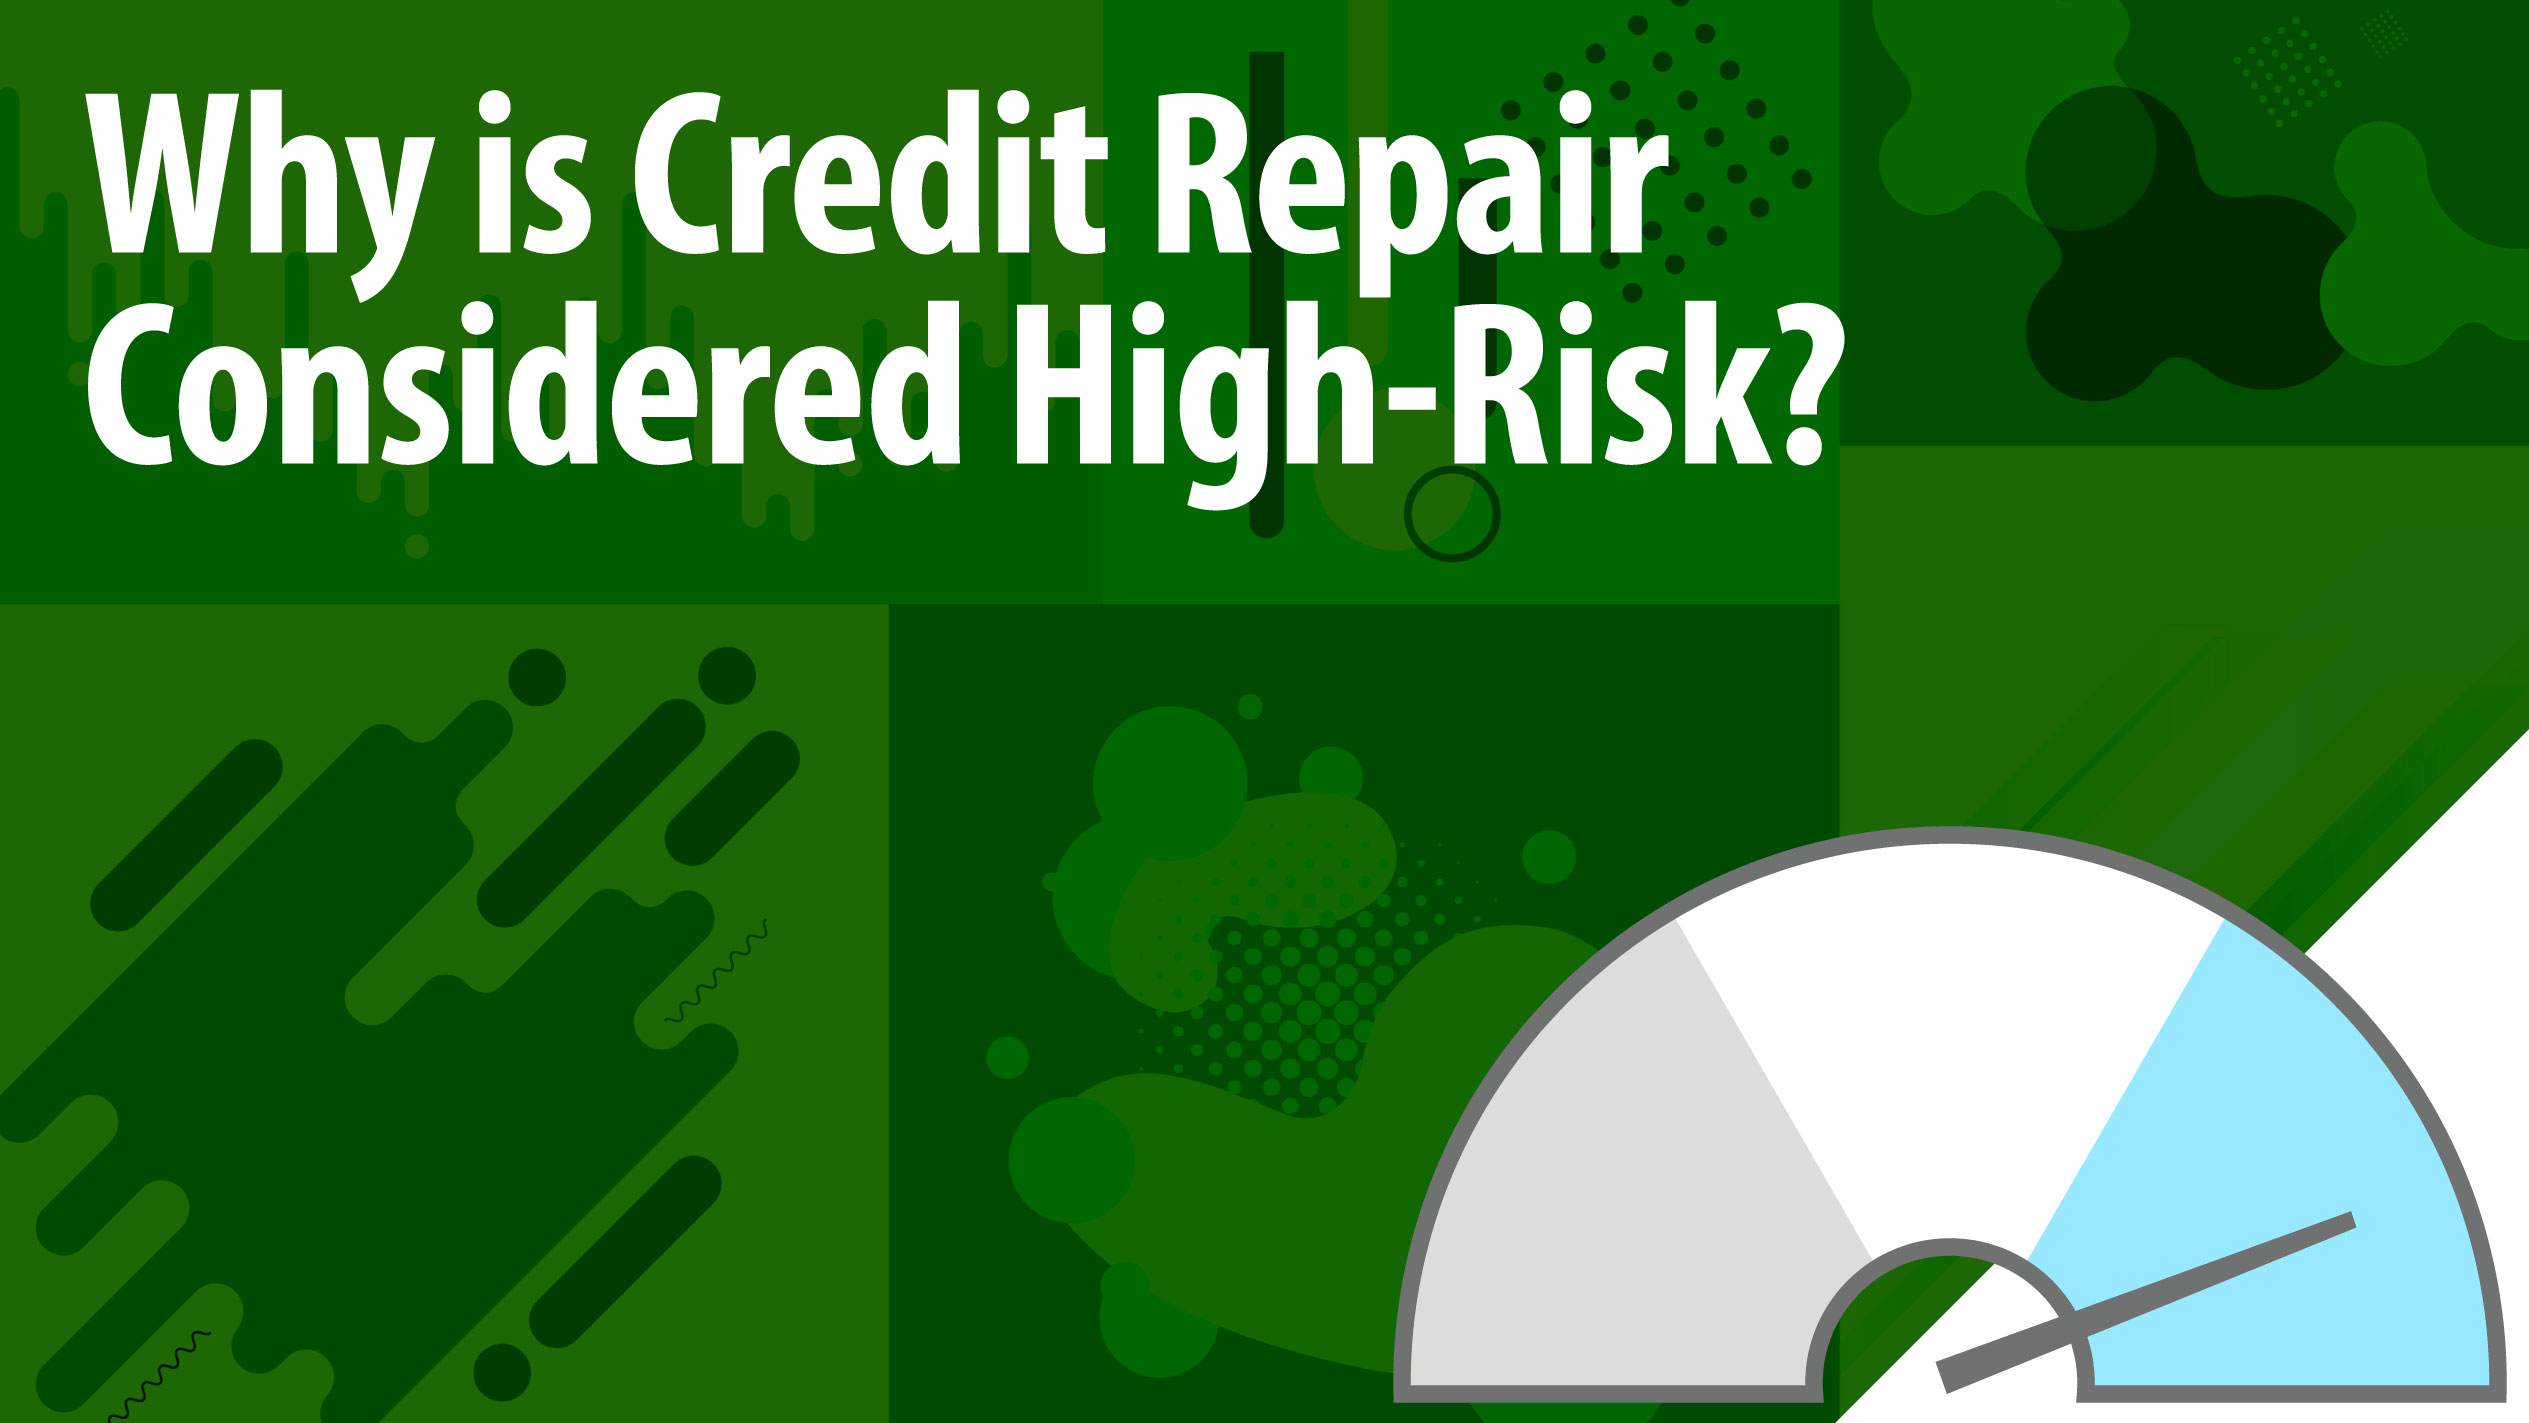 Why is Credit Repair Considered High Risk?